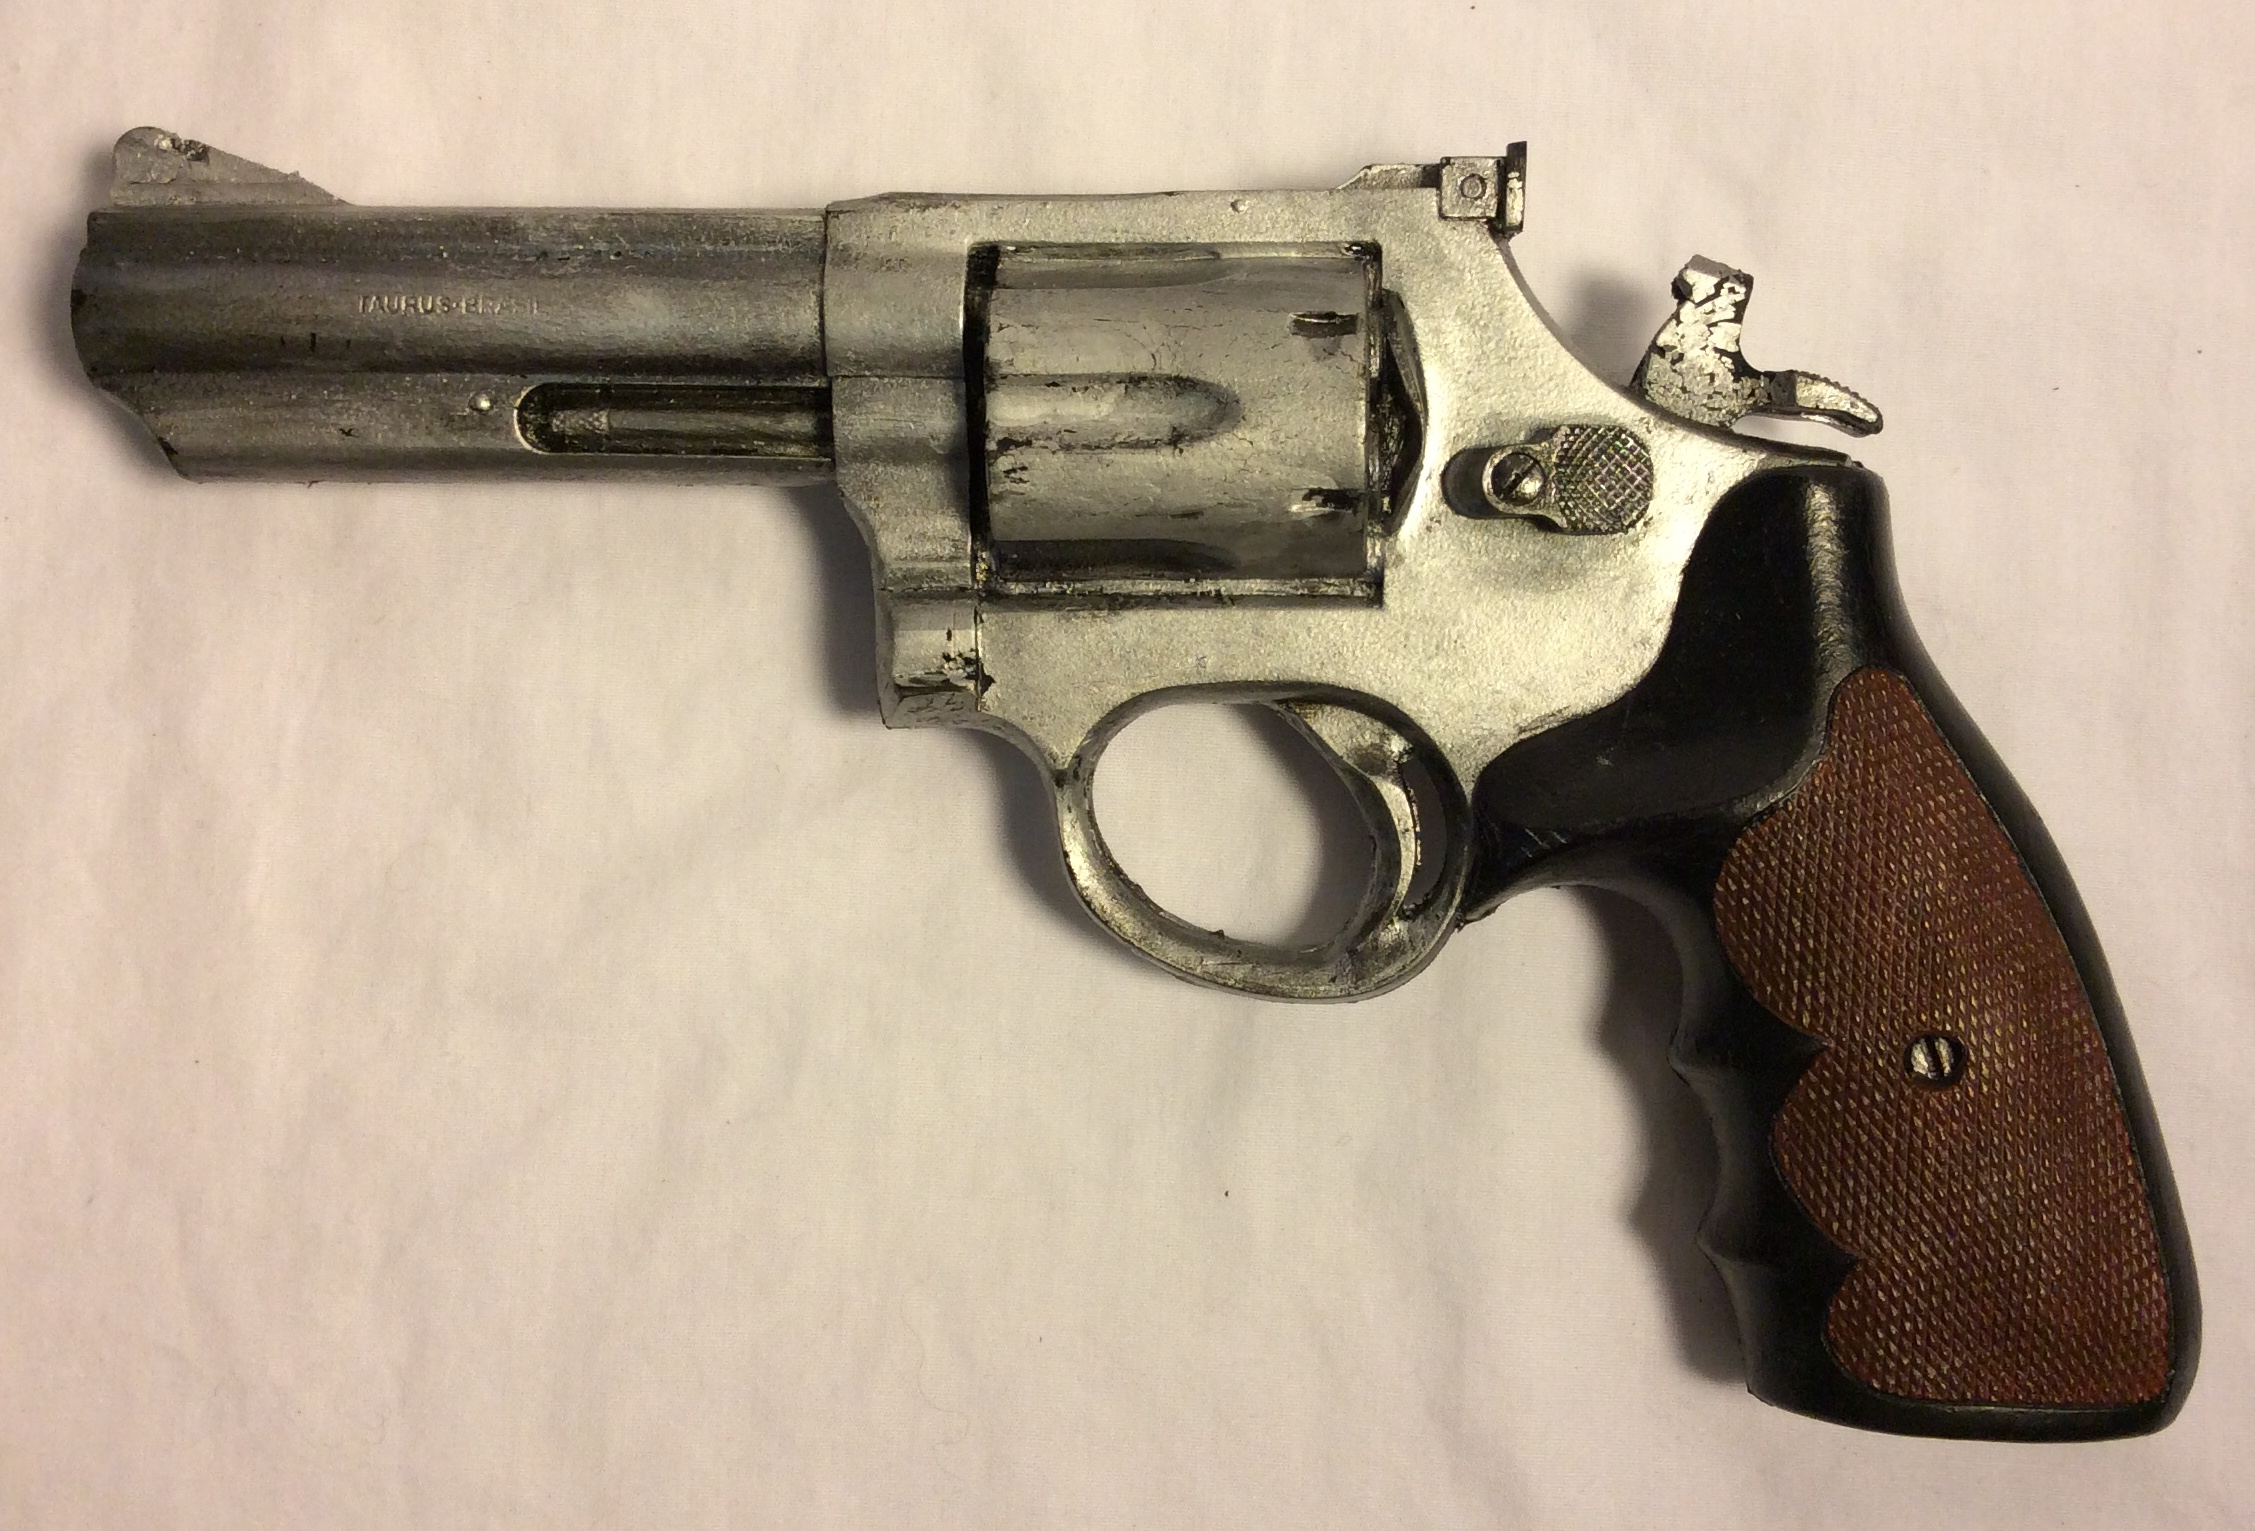 Taurus 357 Magnum, silver with brown/black handle soft rubber handgun